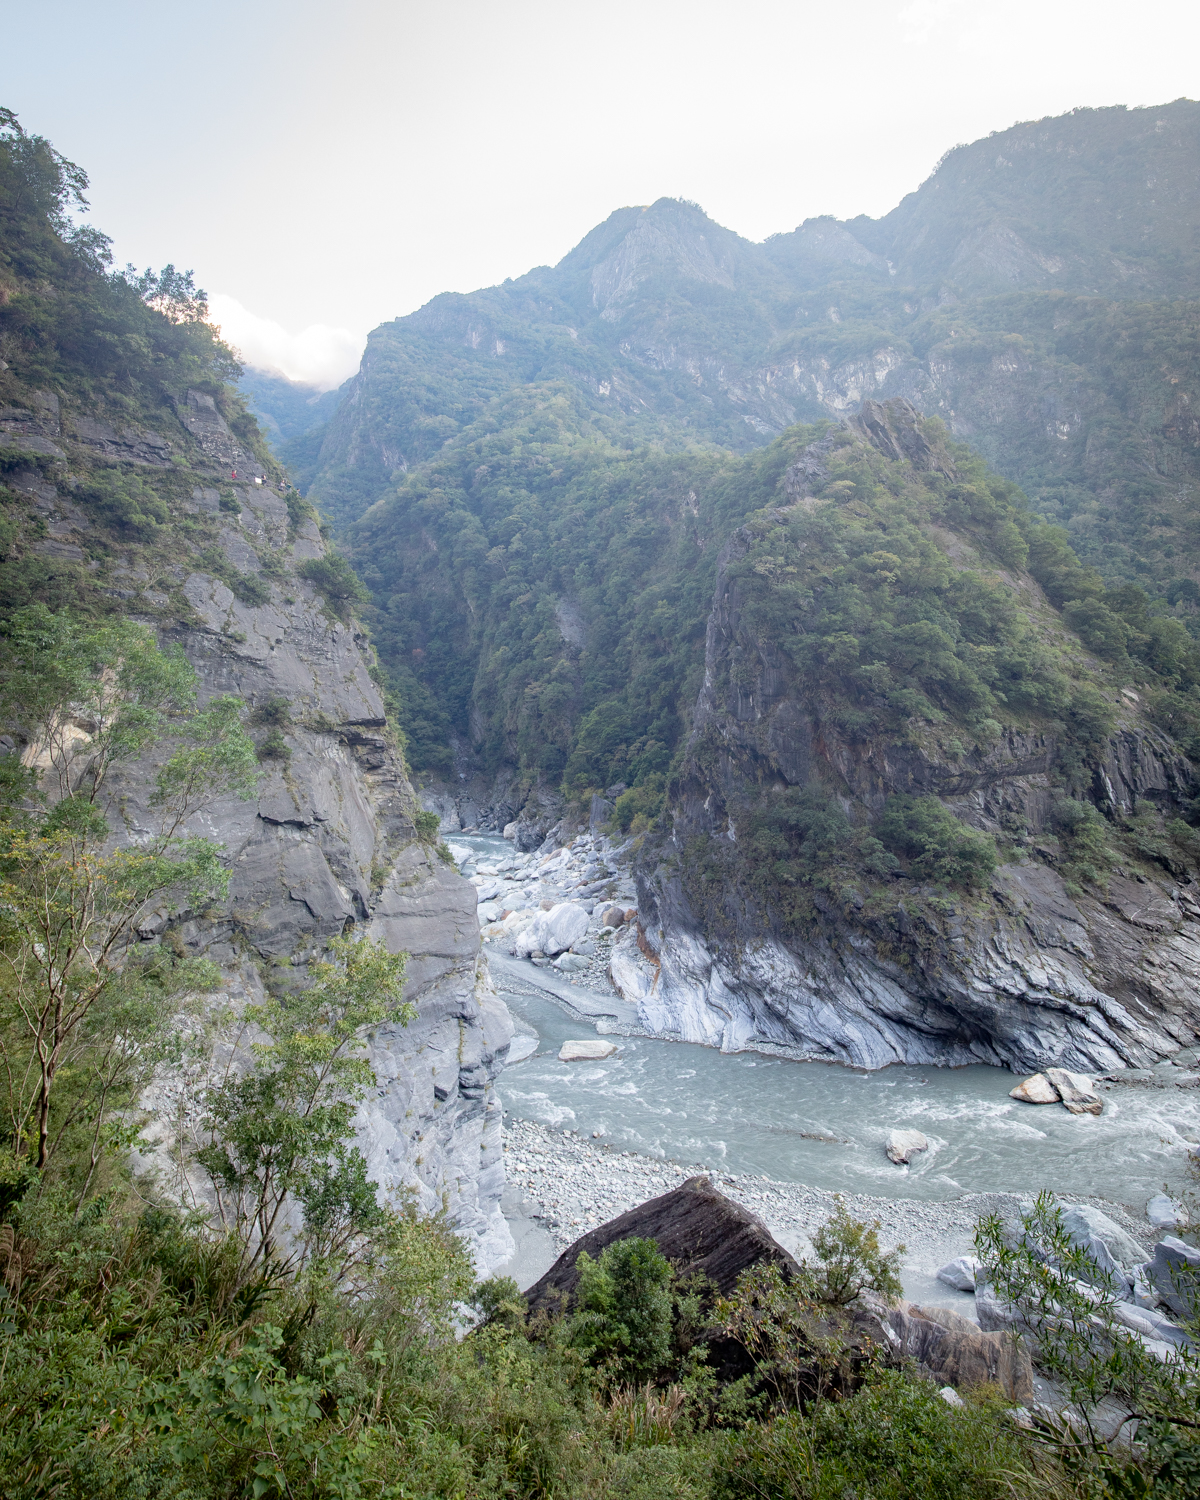 The views from the Lushui Trail